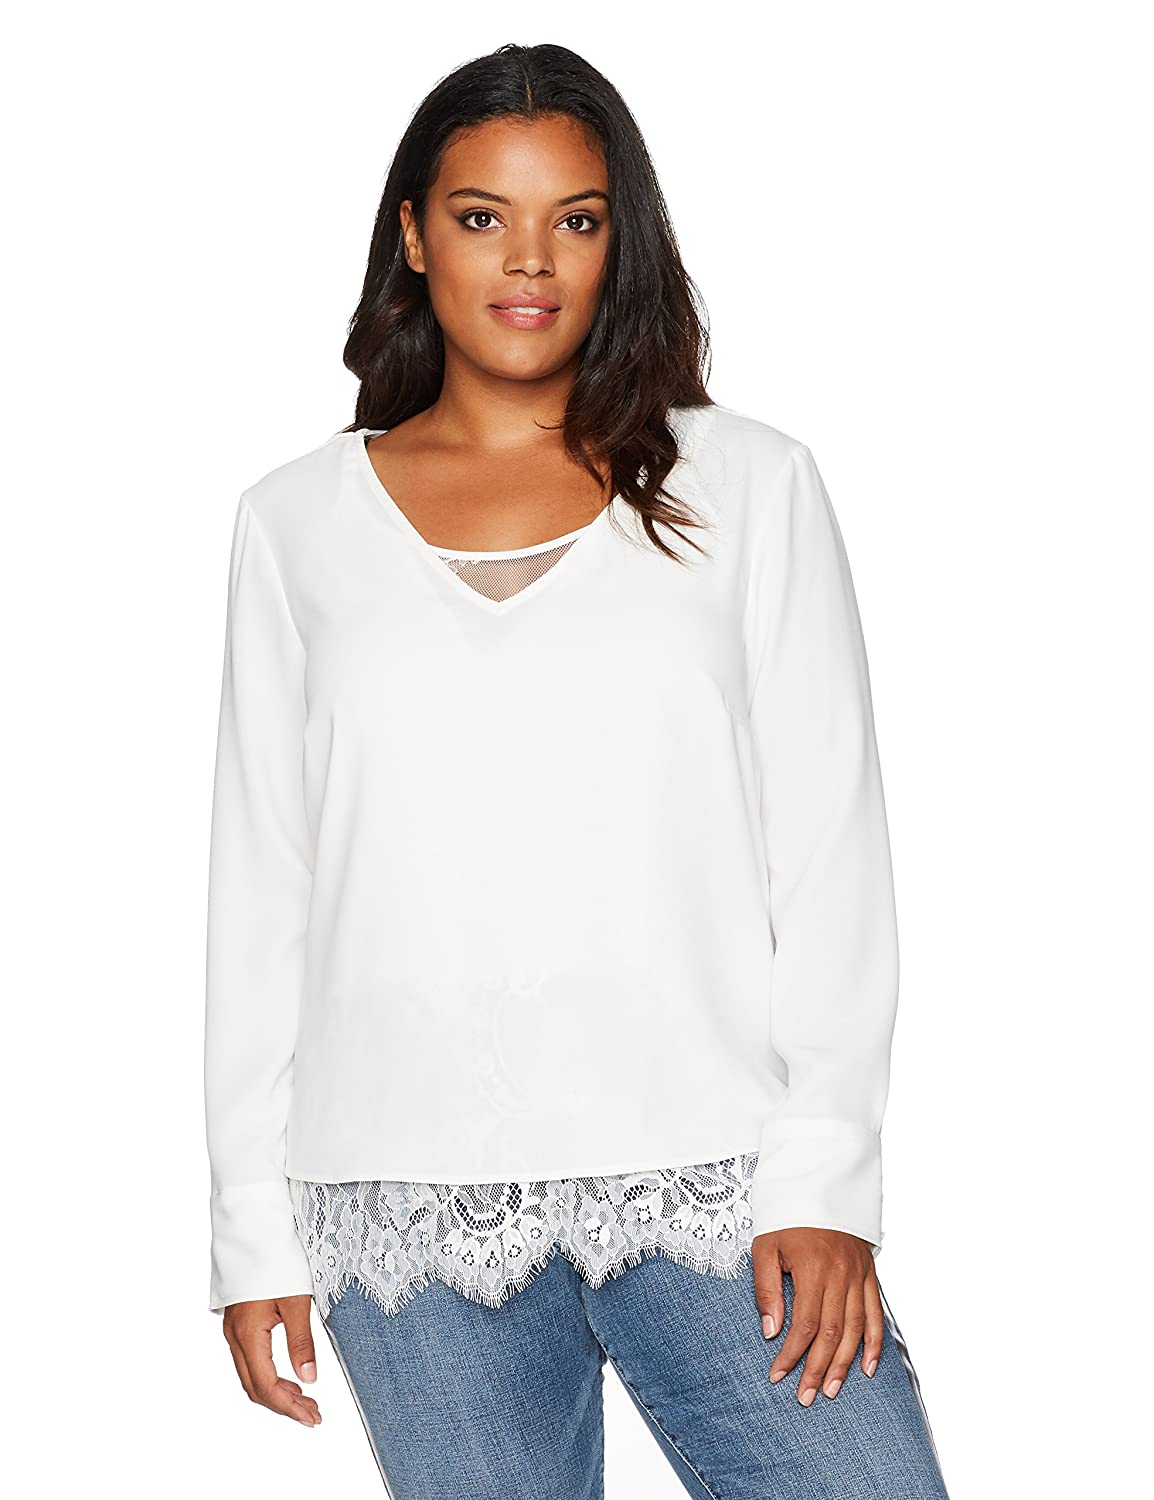 Rebel Wilson X Angels Women s Plus Size Double Layer Top W Lace Underlay  and Split Barrel Cuff at Amazon Women s Clothing store  002c9b889